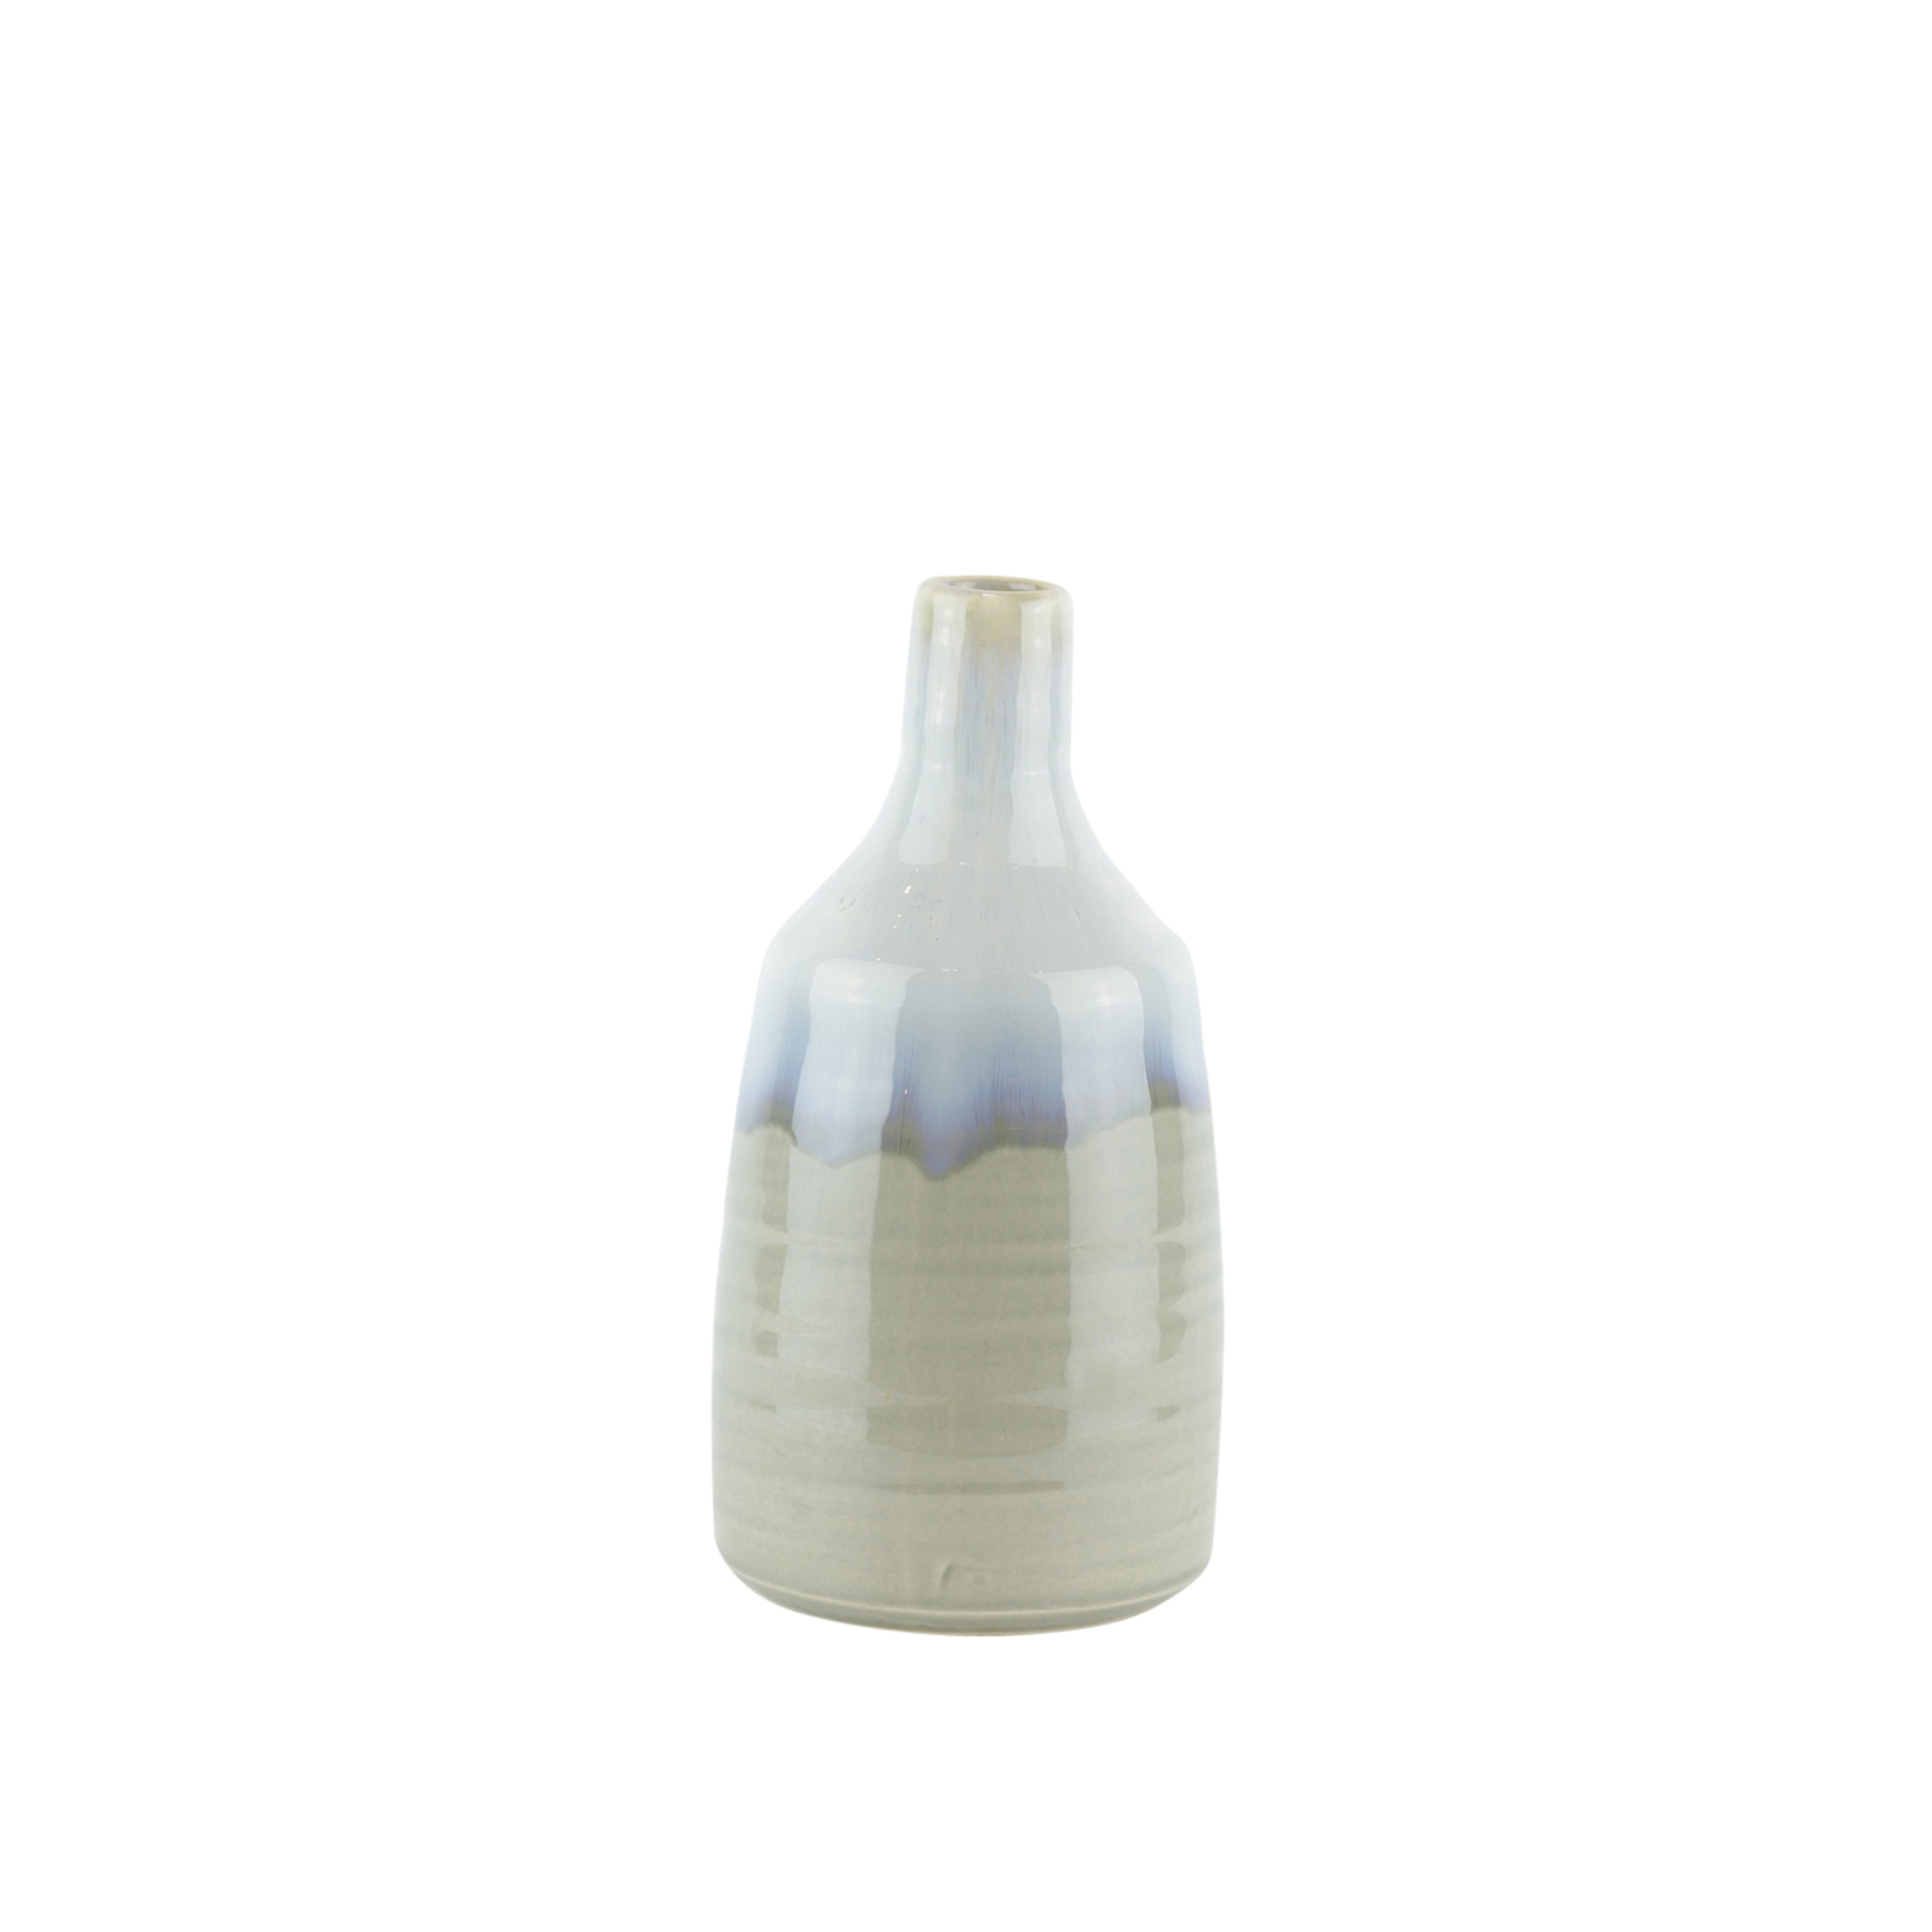 Decorative Ceramic Vase with Dripping Pattern, Blue and Gray